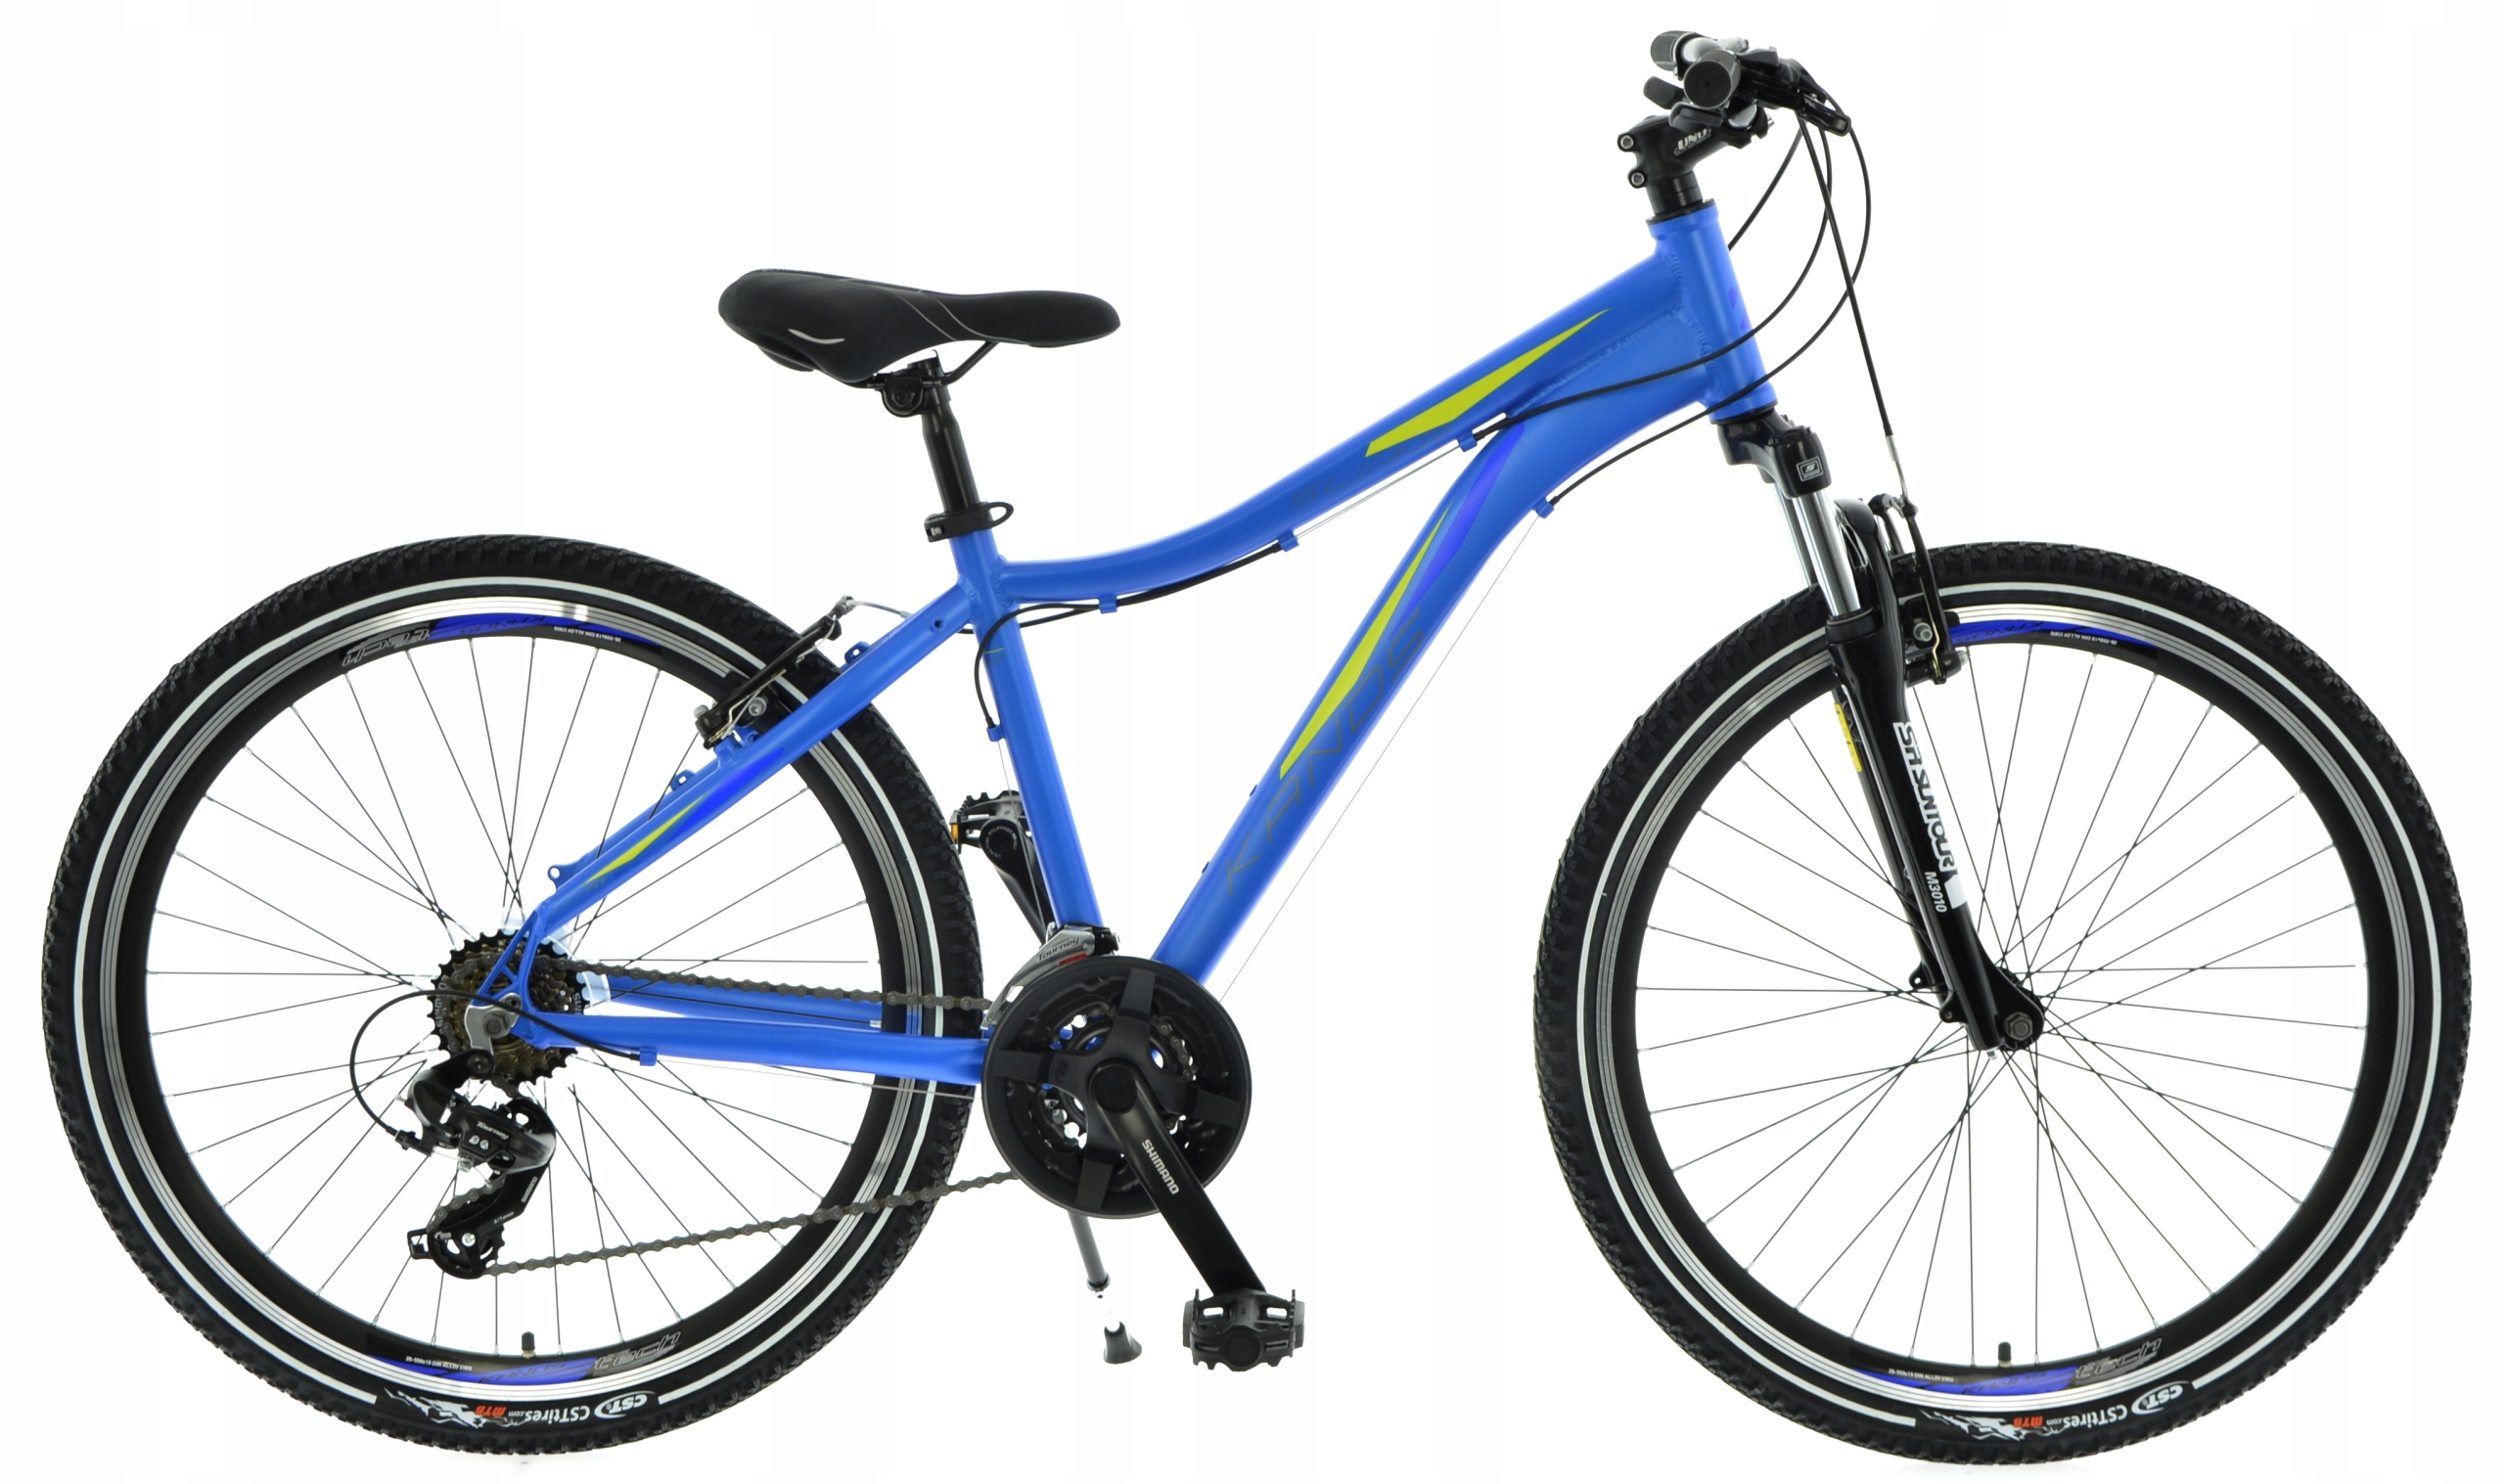 Horský bicykel - Bike 26 Kands Slim-R Alor County Shimano 2020